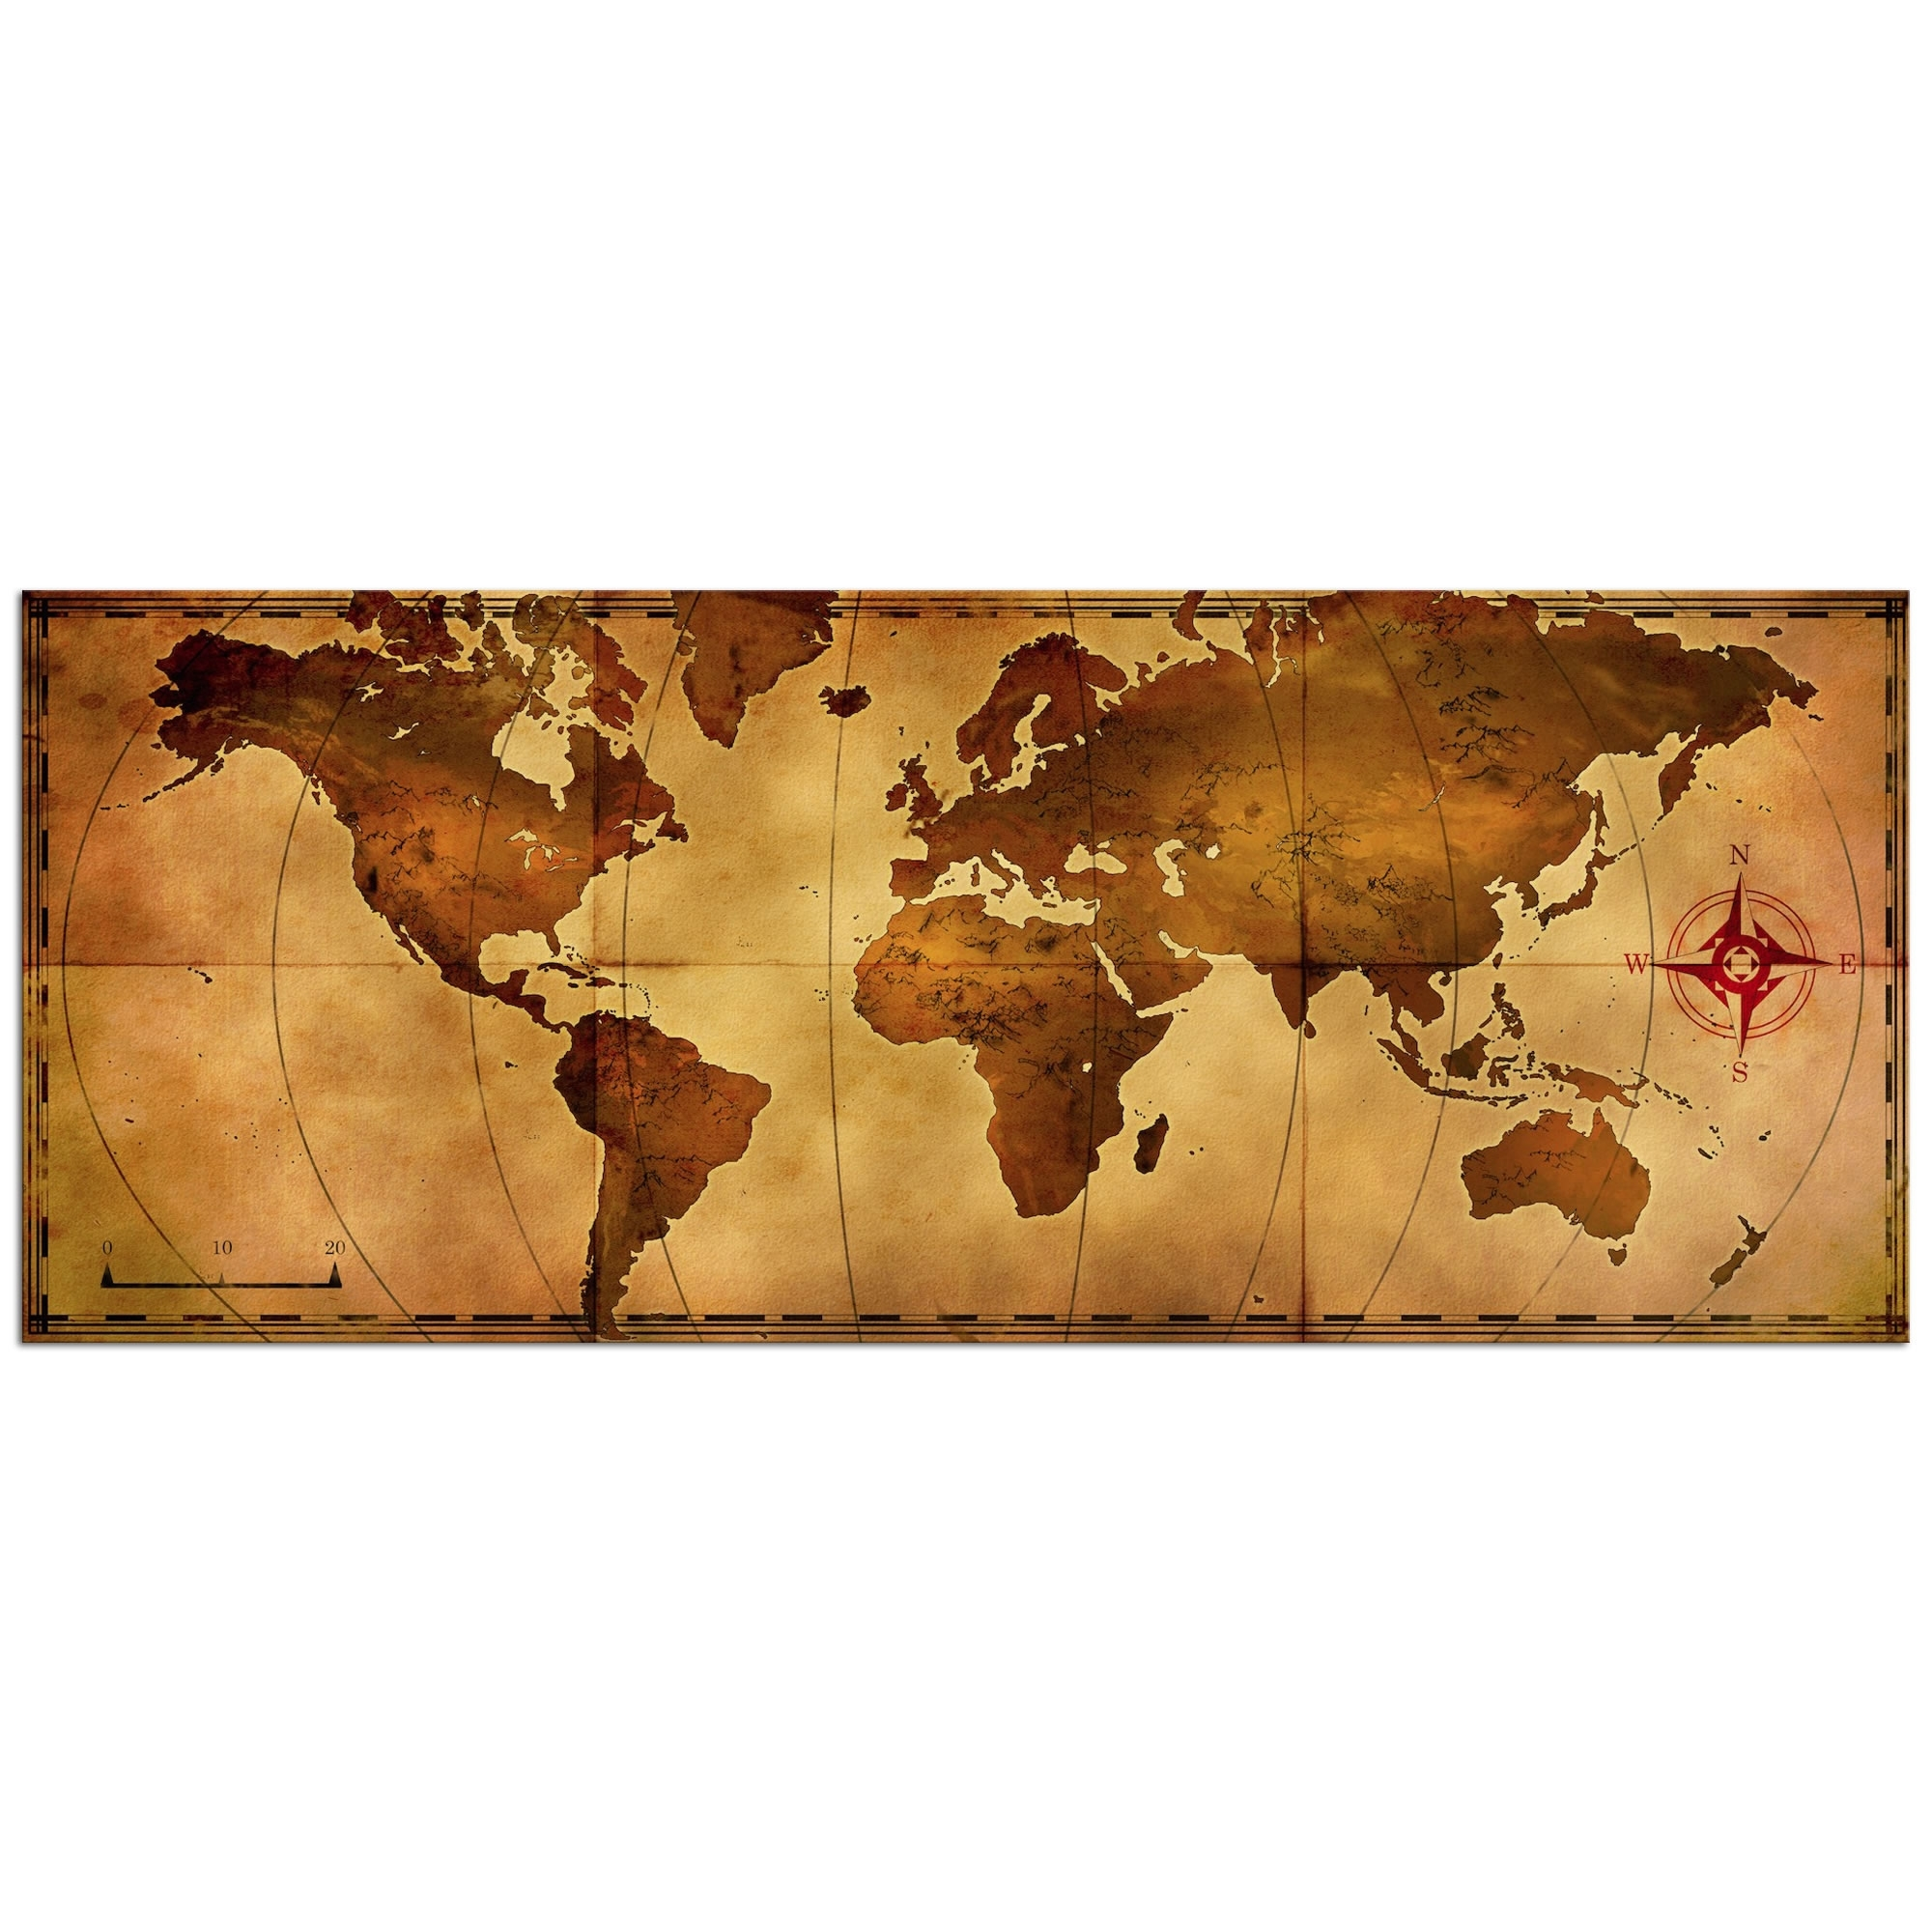 Metal Art Studio - Old World Map - Large Indoor/outdoor Modern Metal throughout Old World Map Wall Art (Image 9 of 20)